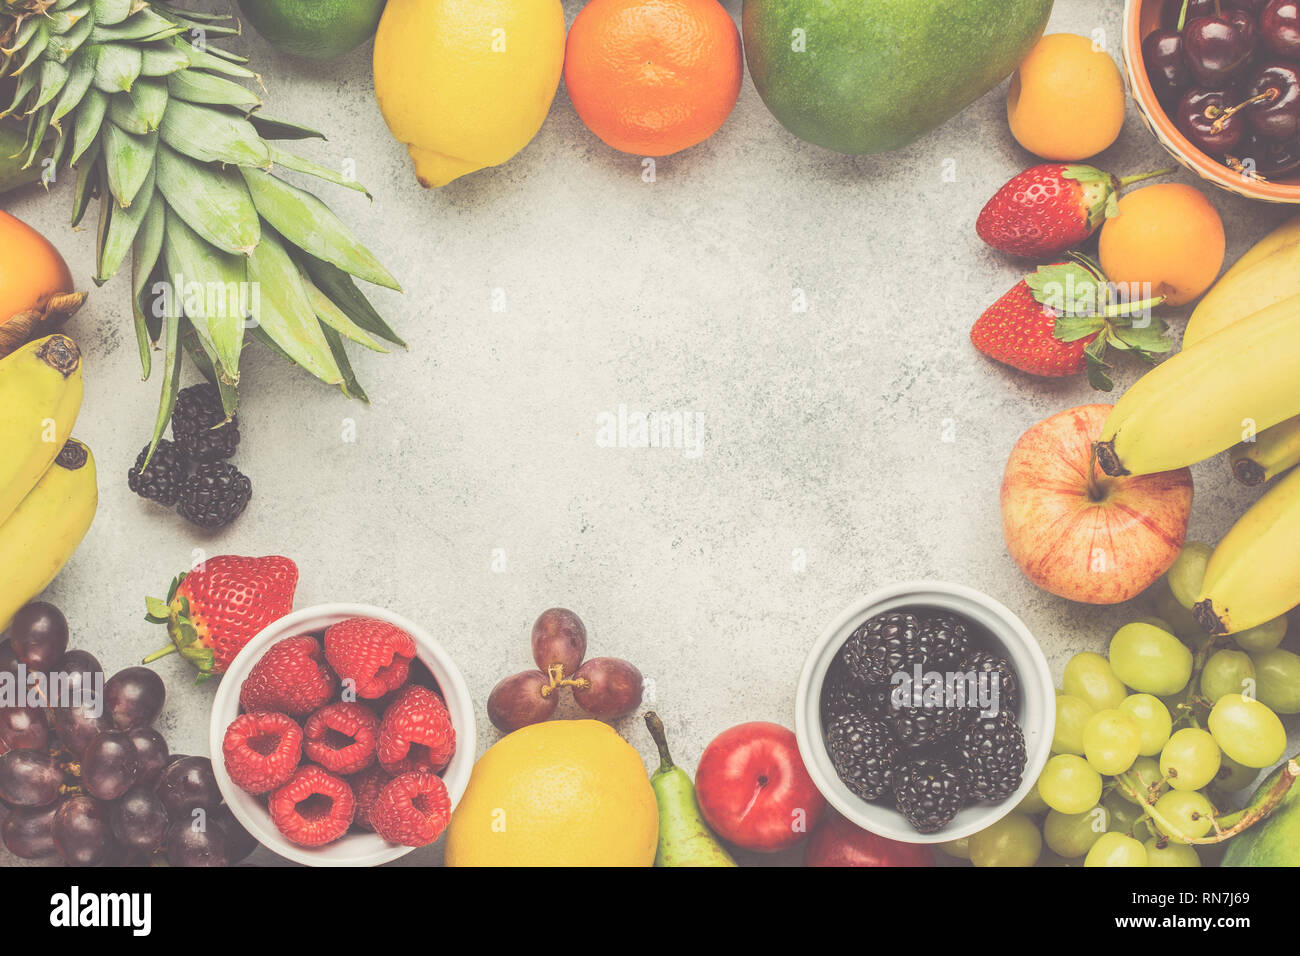 Frame made of ripe fruits, strawberries raspberries oranges plums apples kiwis grapes blueberries mango persimmon on the white table, top view, copy space, toned, selective focus - Stock Image